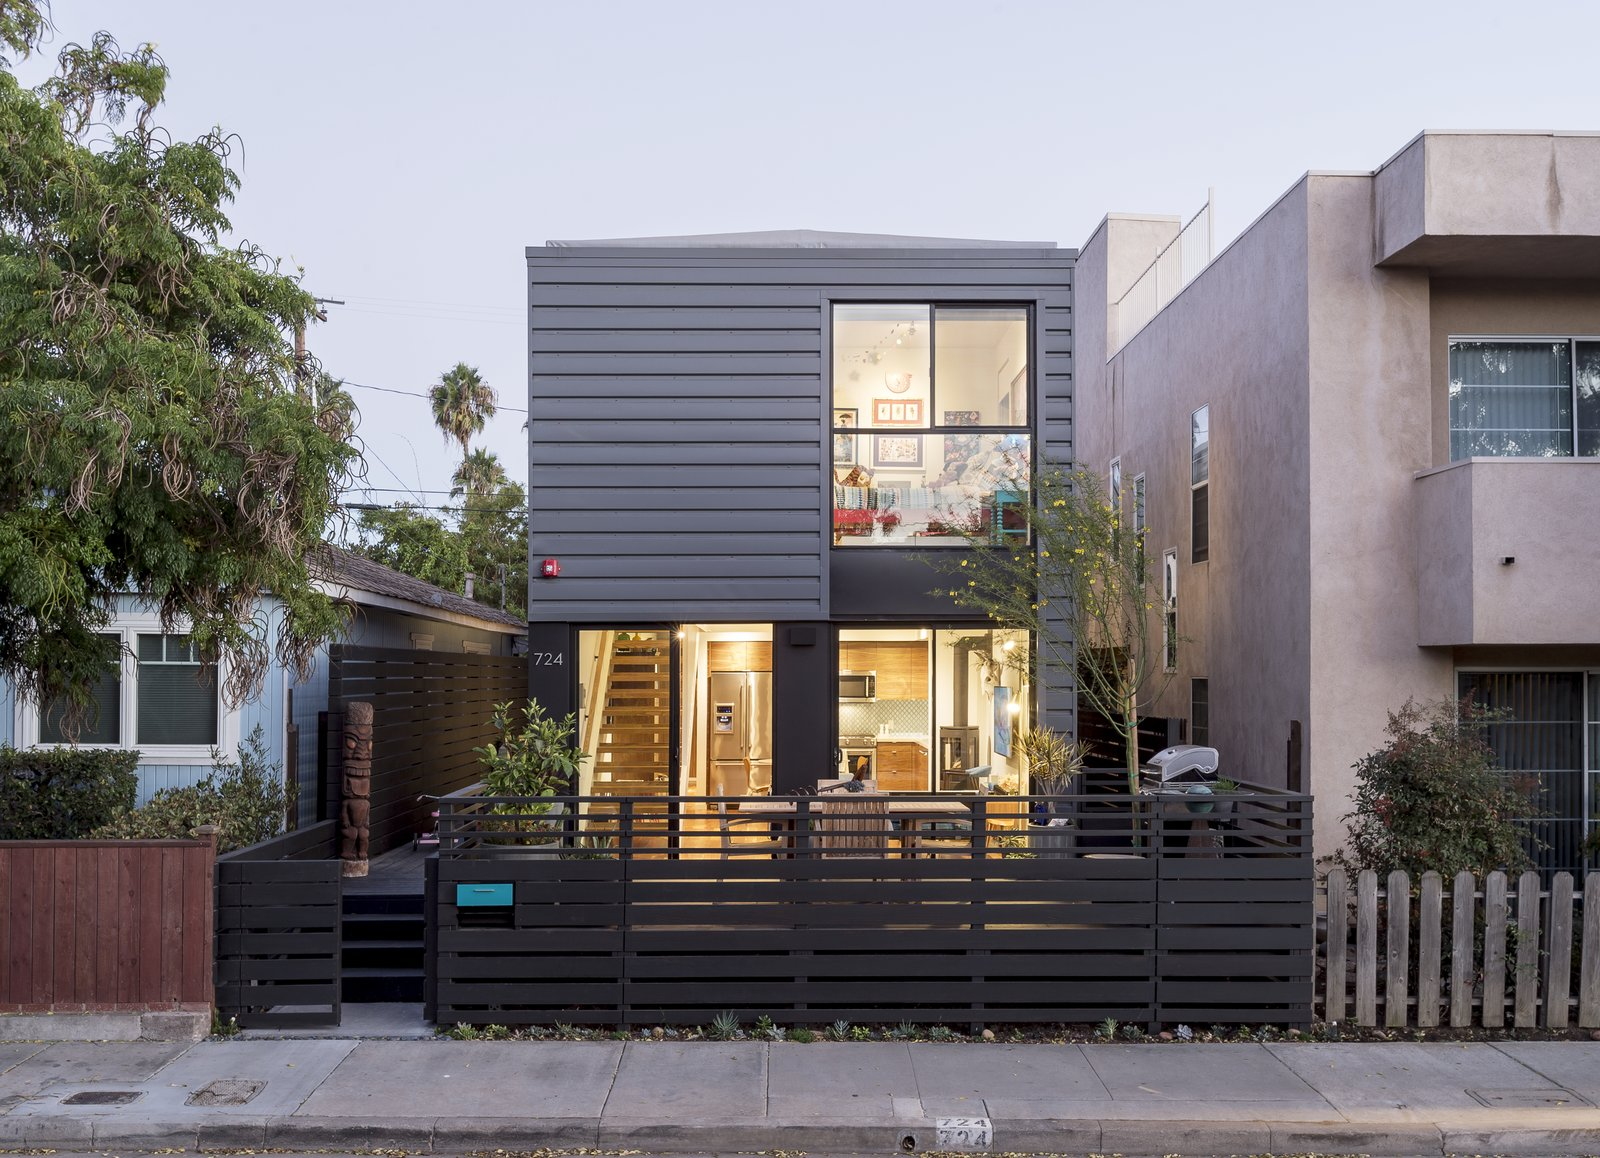 Outdoor, Vertical Fences, Wall, Front Yard, Shrubs, Large Patio, Porch, Deck, Trees, Hardscapes, Wood Patio, Porch, Deck, Decking Patio, Porch, Deck, and Wood Fences, Wall The exterior of Connect 4L 1,600 sf 3 bed 3 bath 2 story modern prefab.  Best Photos from Santa Monica Connect 4L